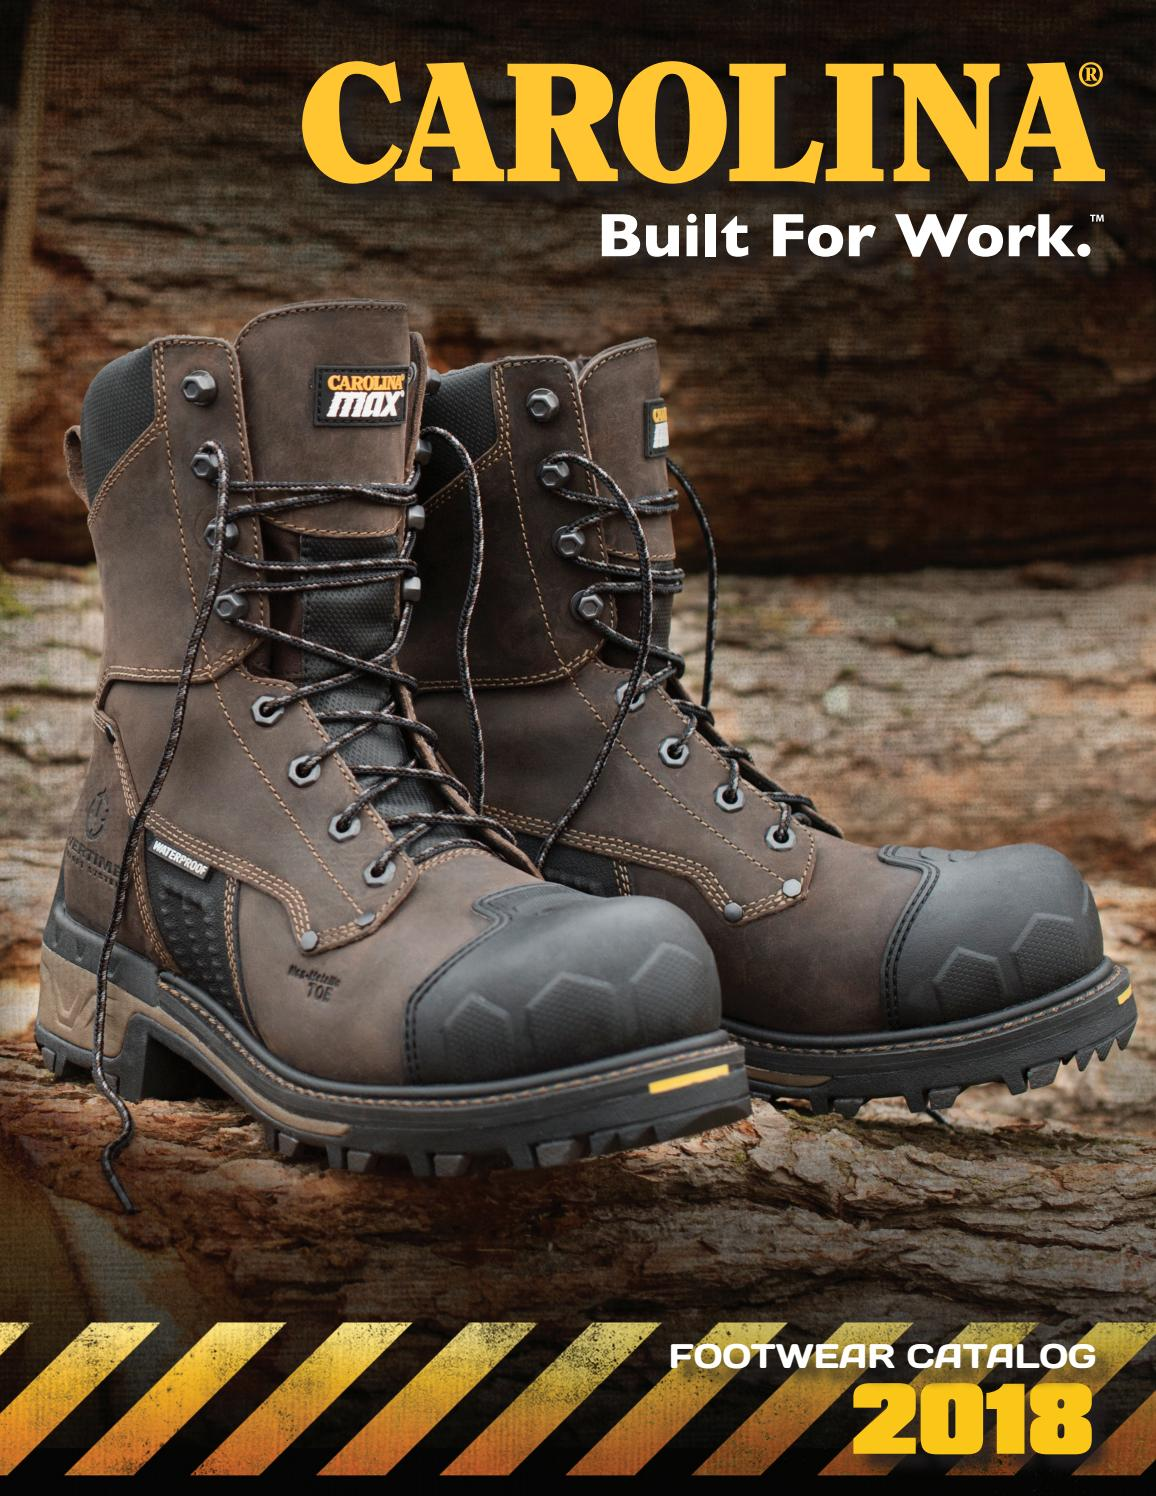 451823d44bf 2018 Carolina Catalog by HH Brown Work & Outdoor Group - issuu